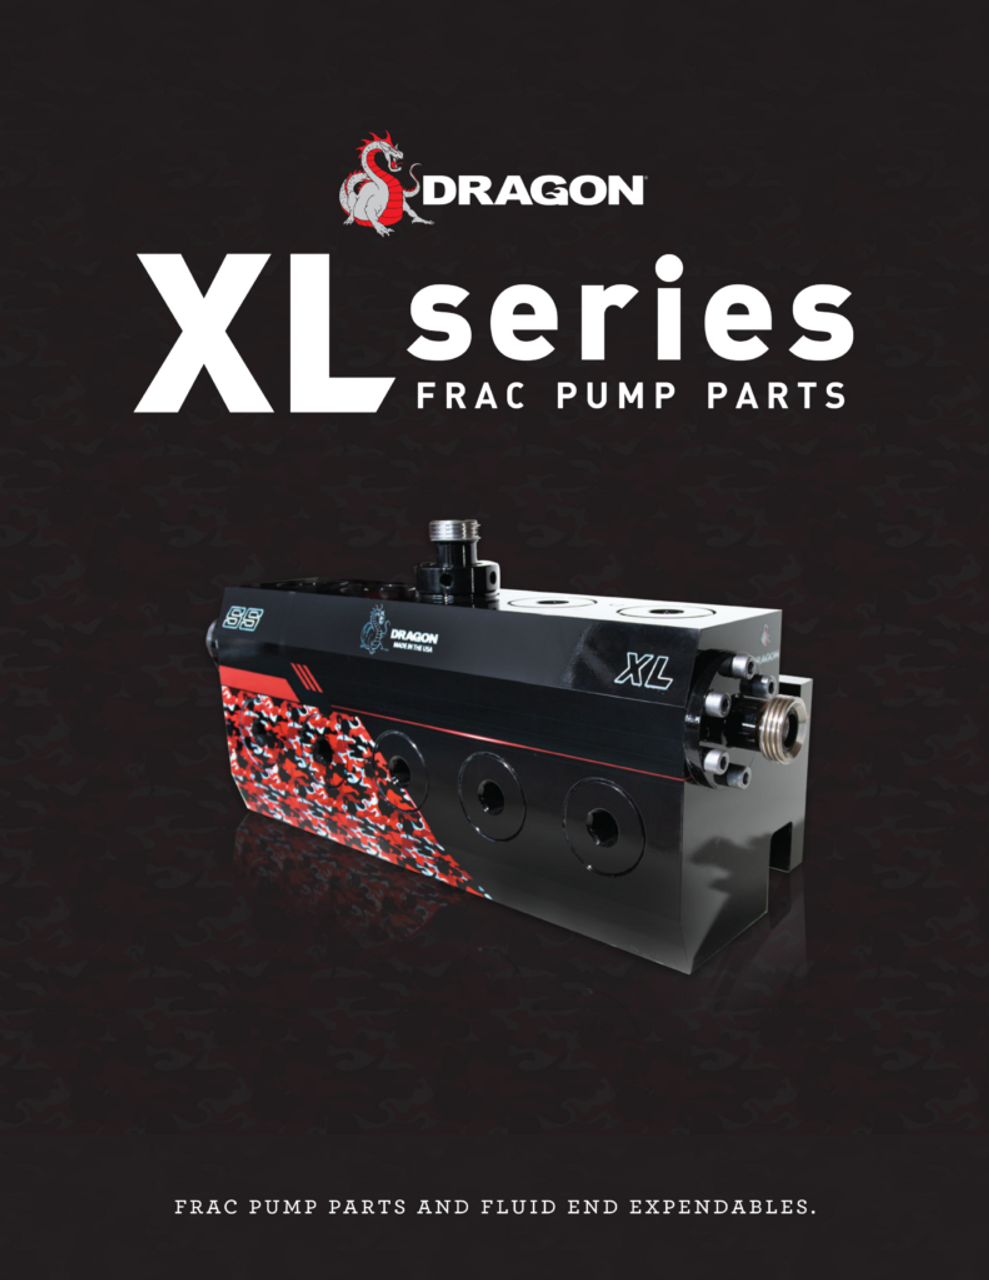 XL Series - Frac Pump Parts